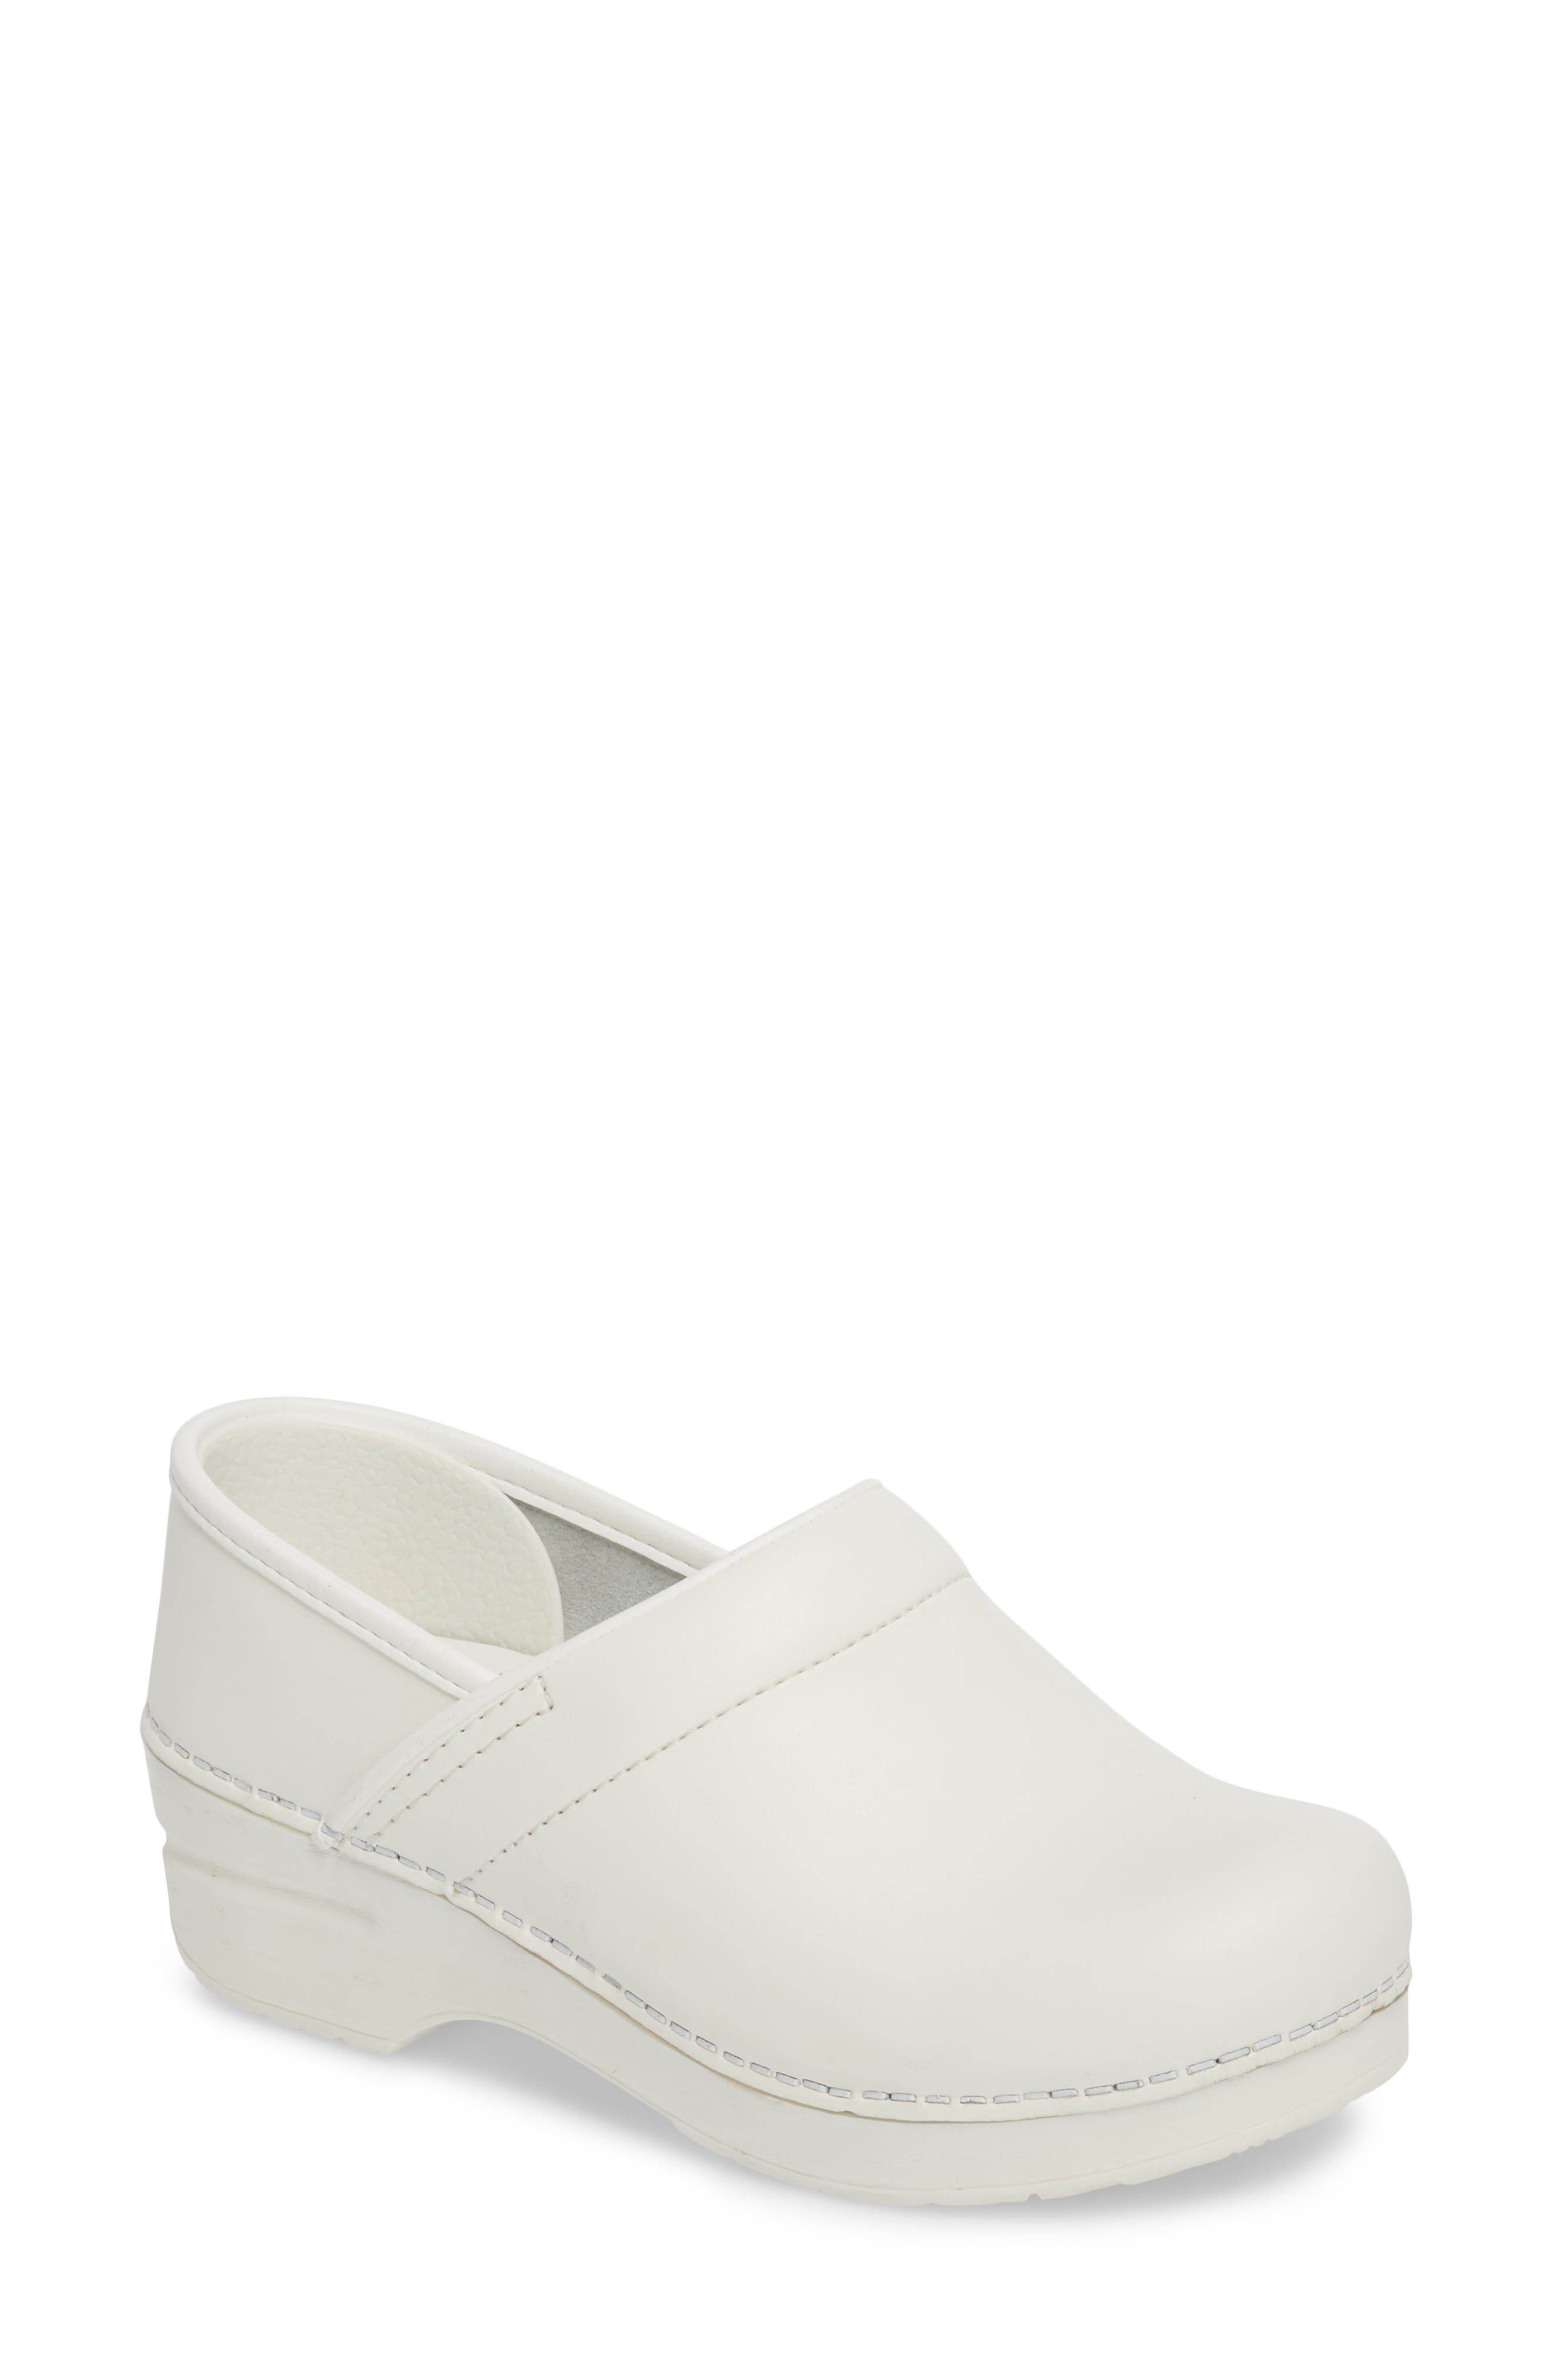 Wide Pro Clog,                         Main,                         color, White Leather